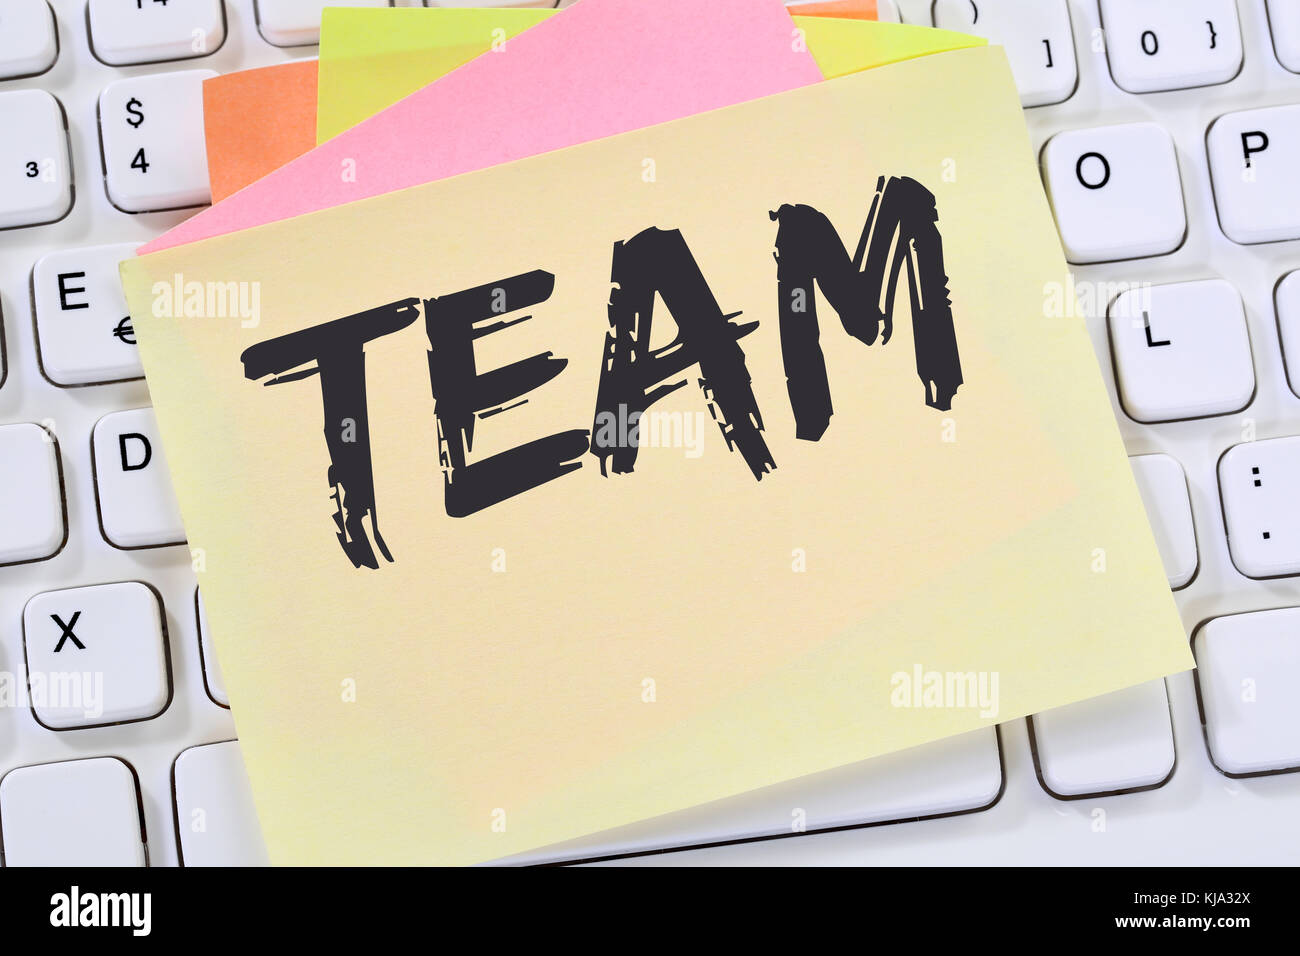 Team teamwork working together office business concept note paper computer keyboard - Stock Image